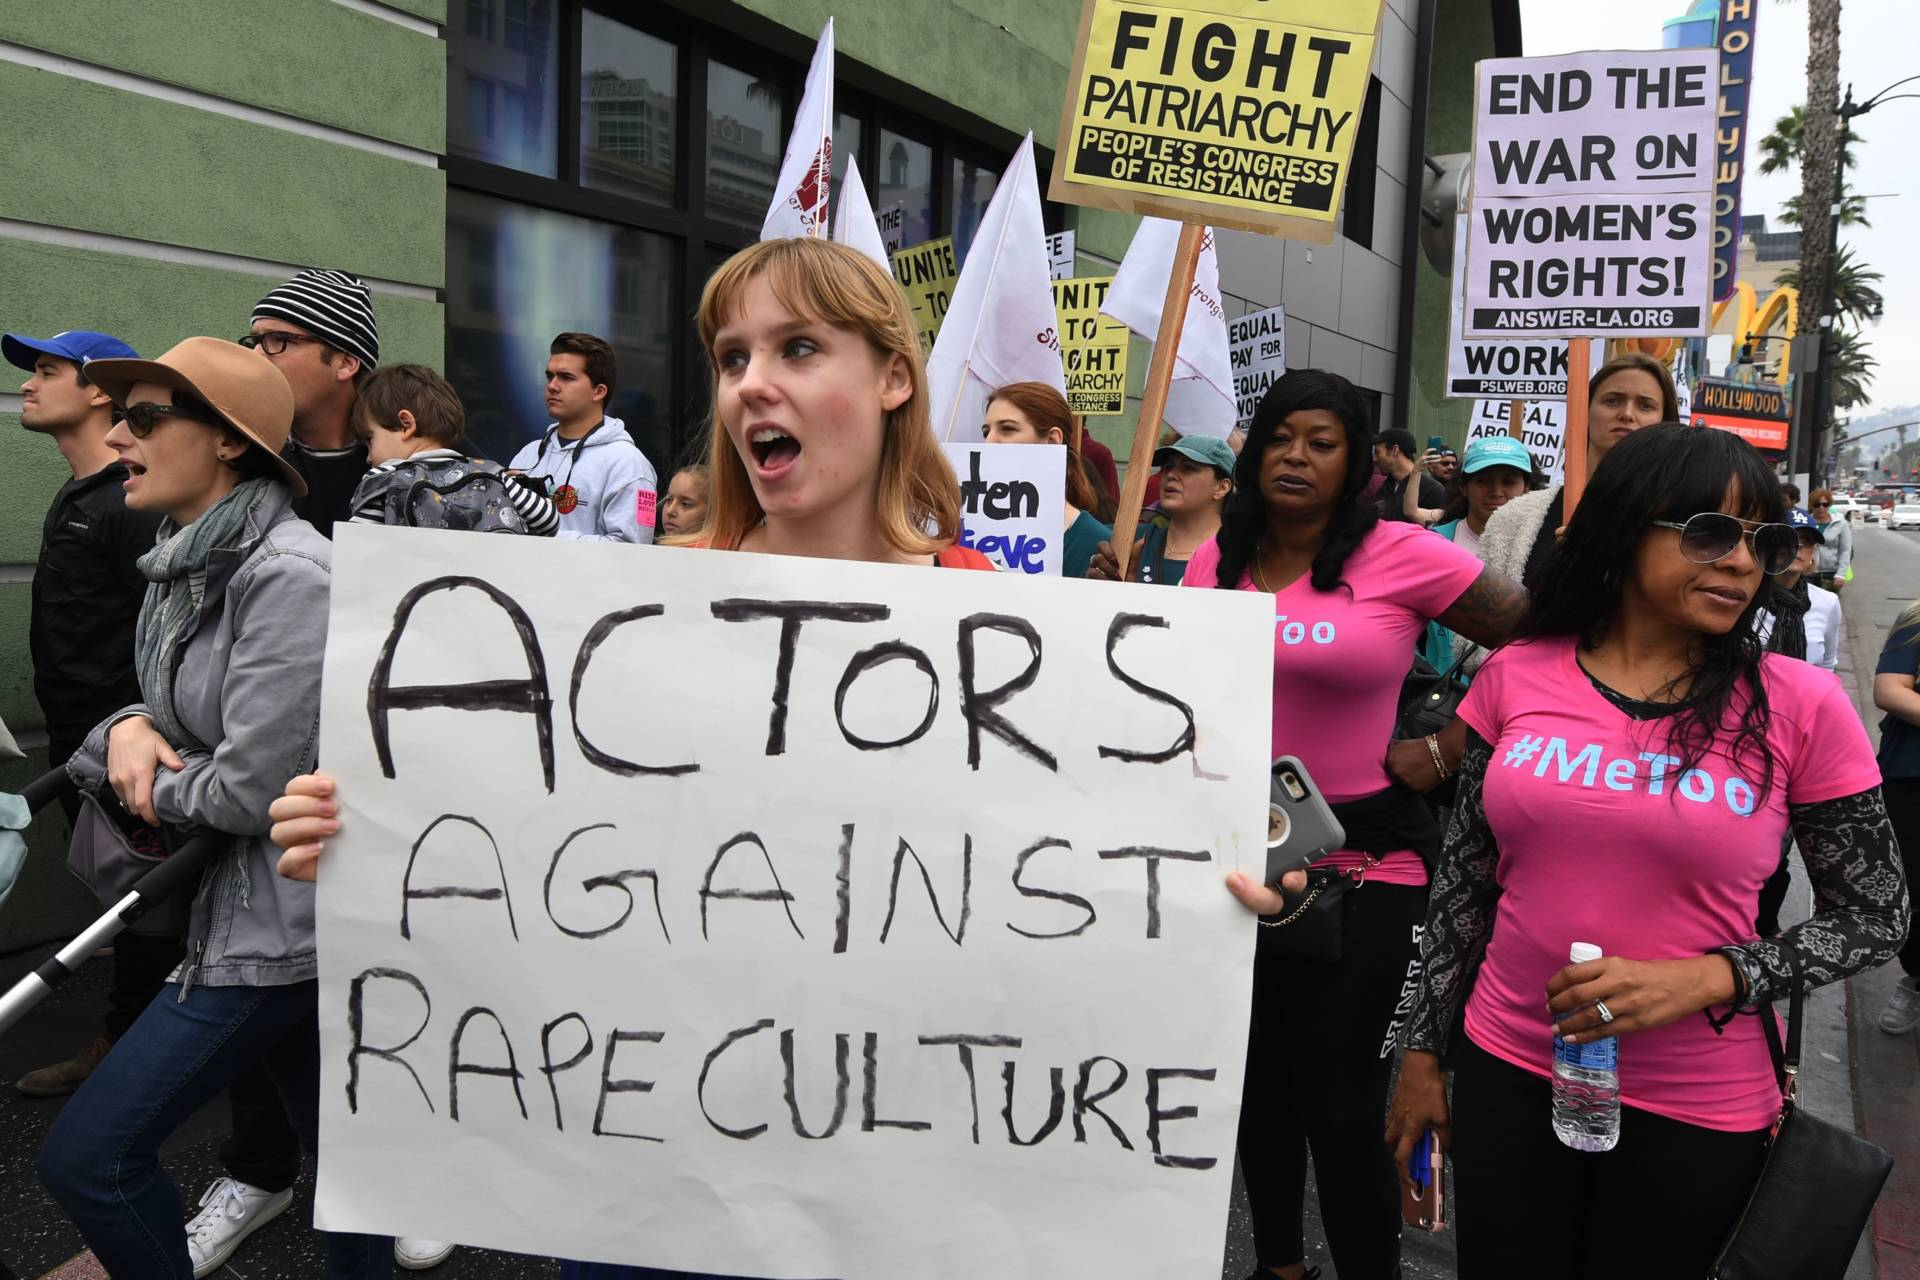 Victims of sexual harassment, sexual assault, sexual abuse and their supporters protest during a #MeToo march in Hollywood on Nov. 12. Mark Ralston/AFP/Getty Images